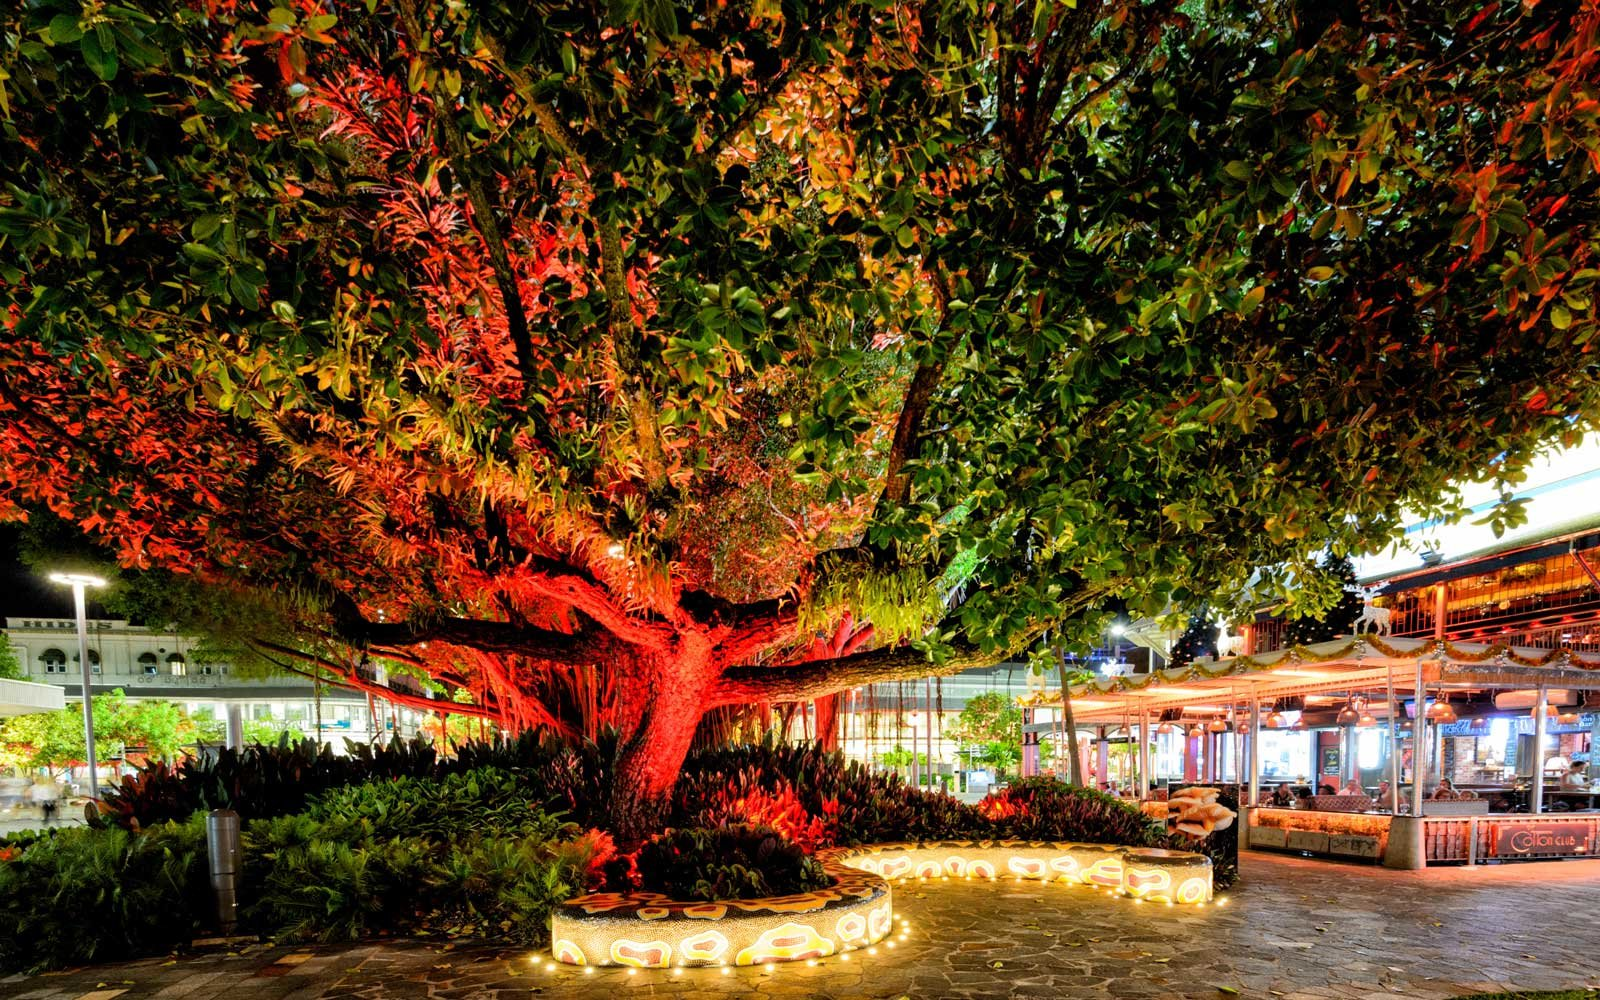 Fig Christmas tree in Cairns, Australia